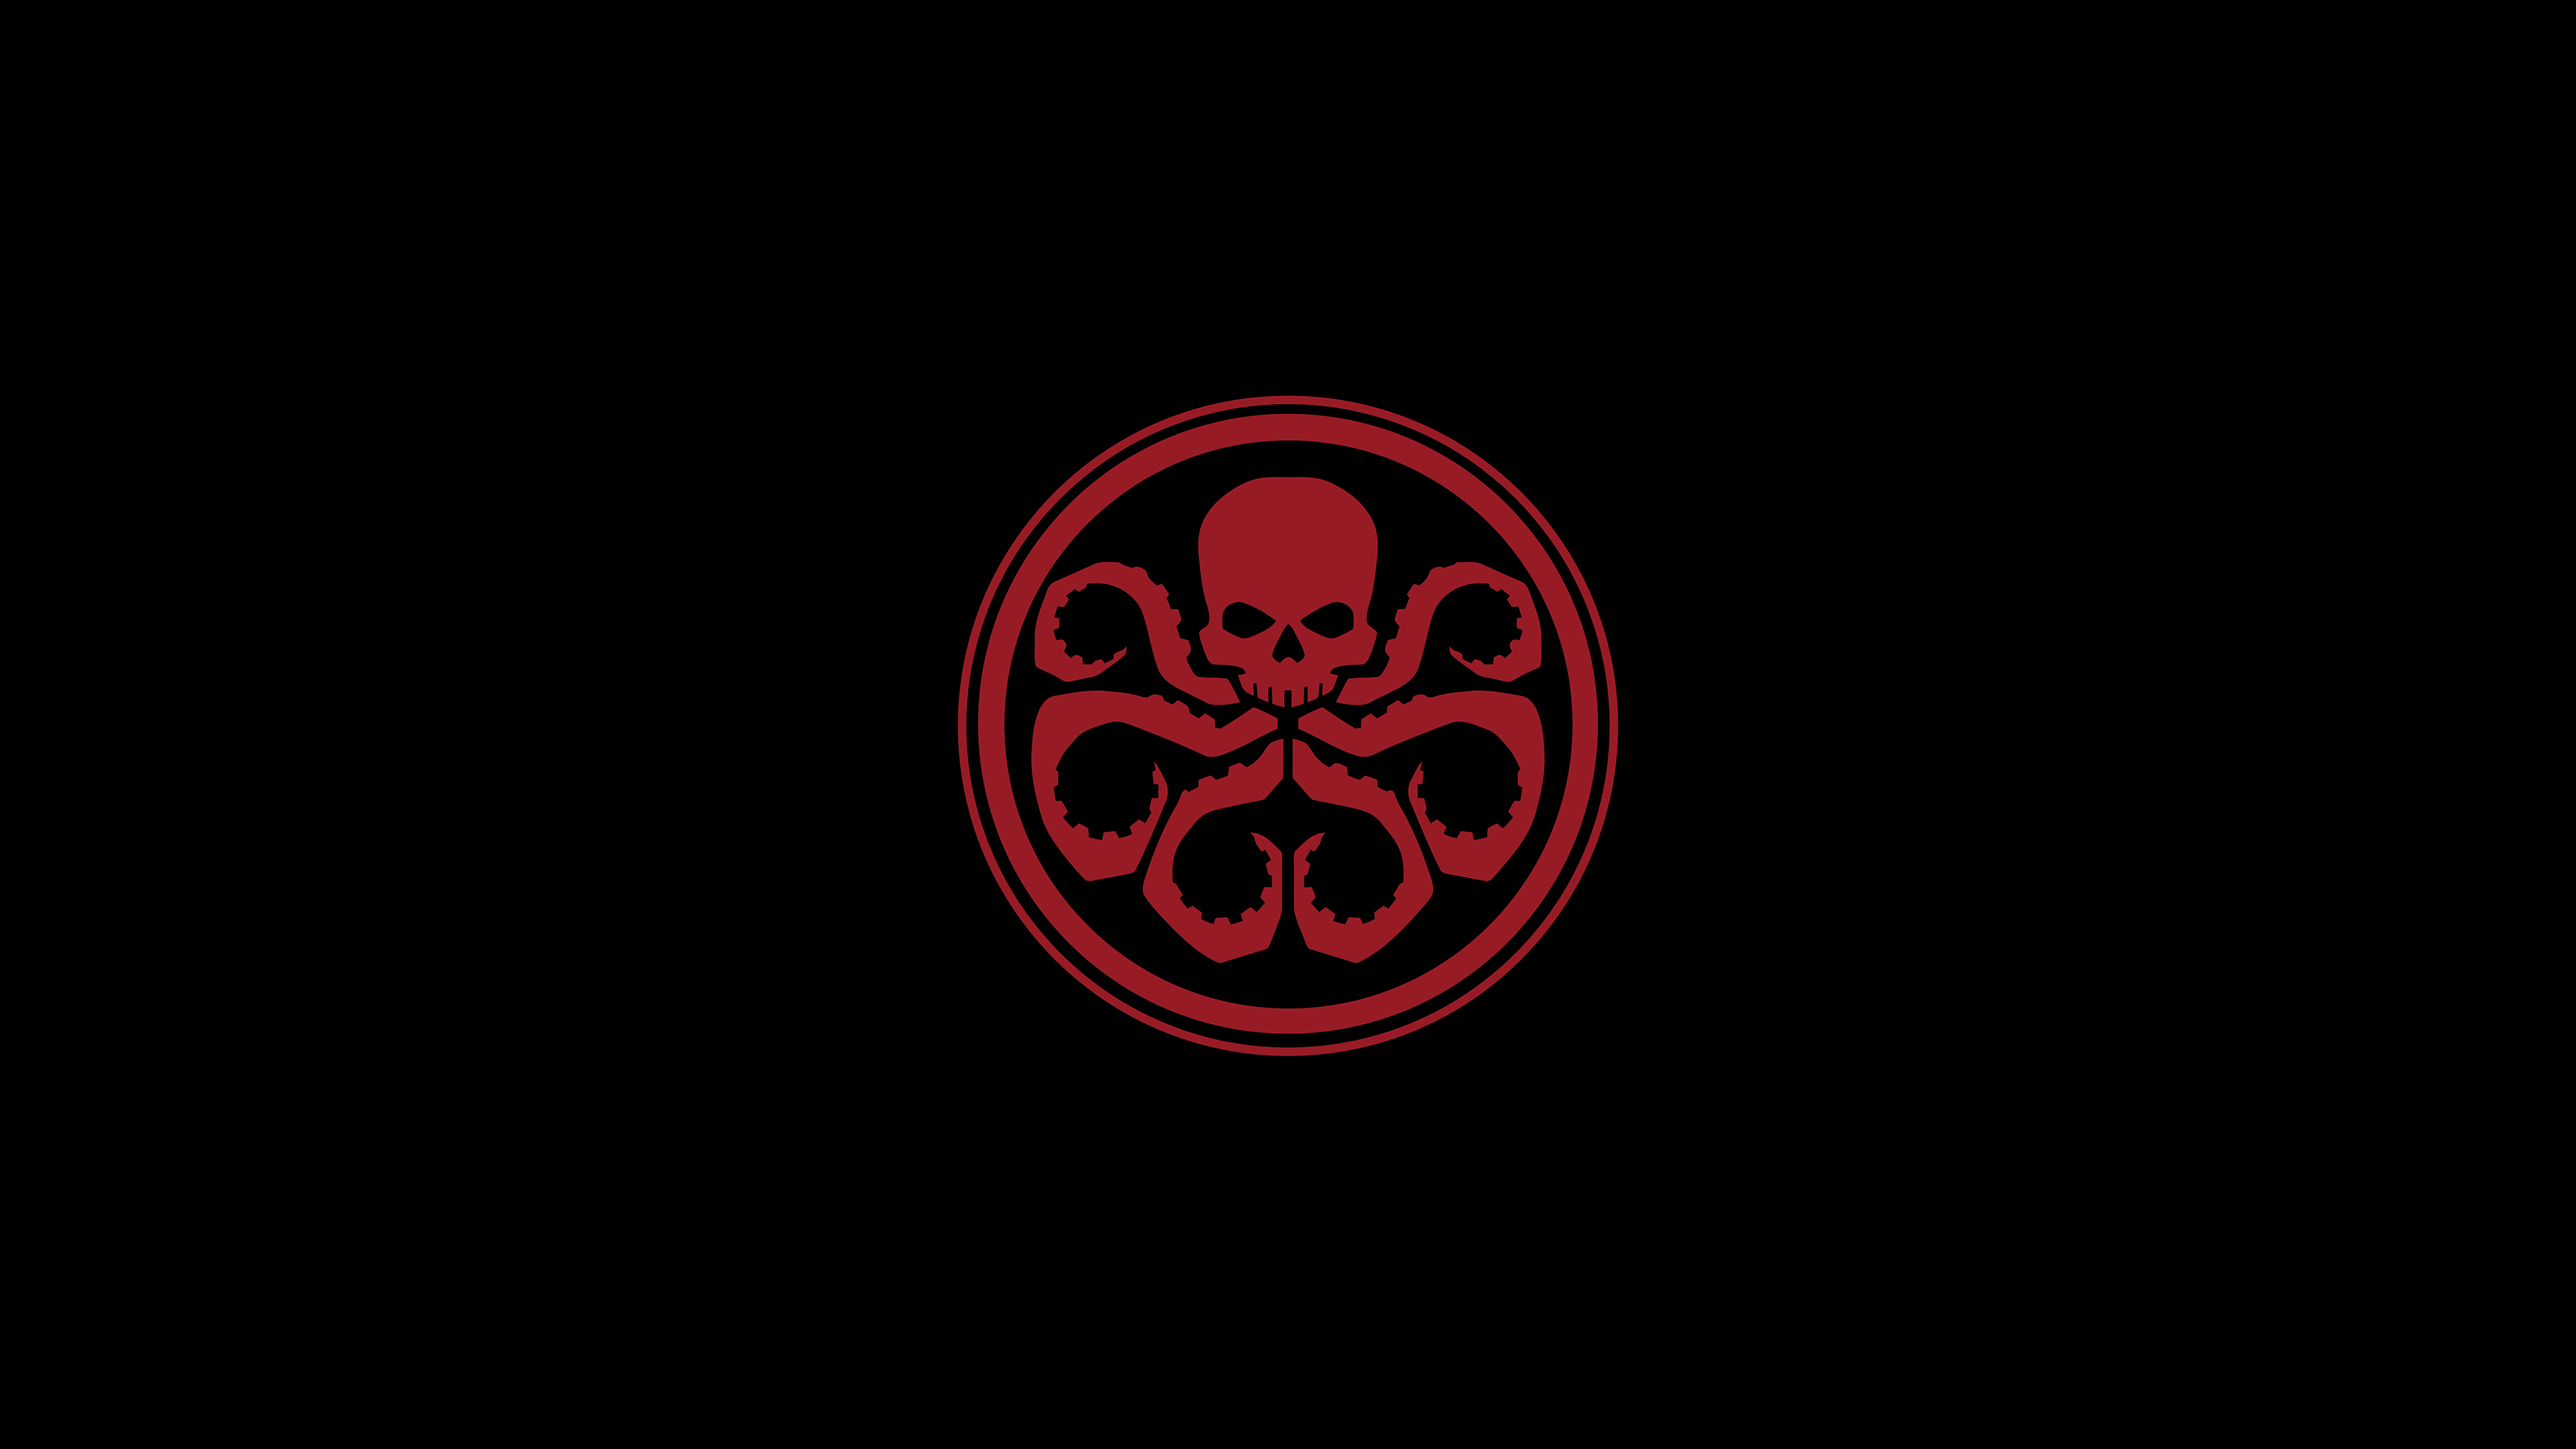 Hydra Logo Wallpapers Top Free Hydra Logo Backgrounds